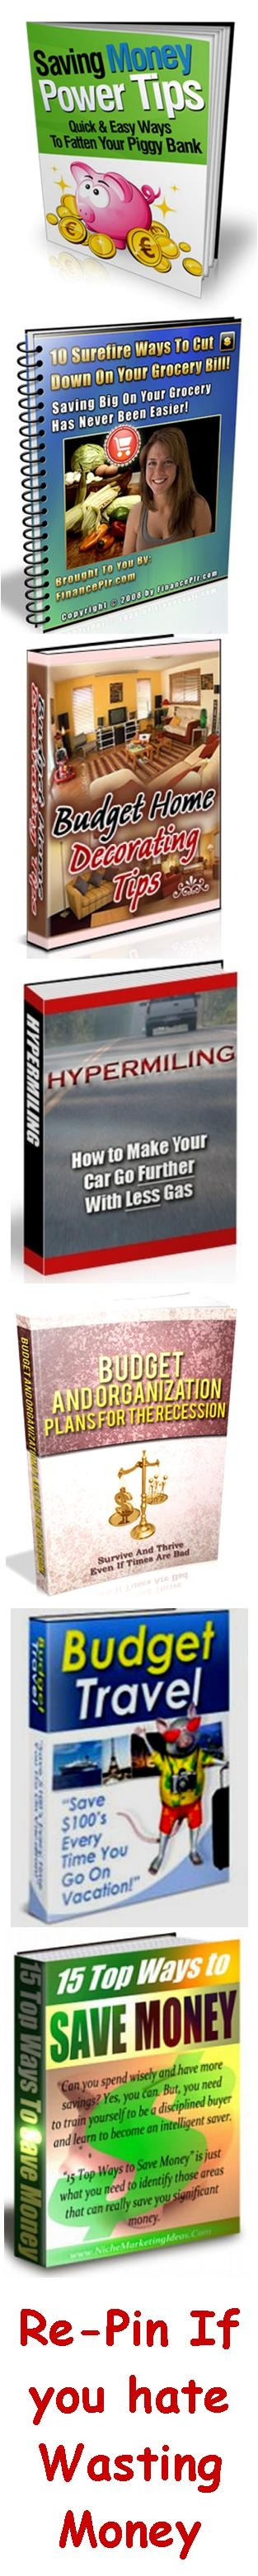 You could save yourself a significant amount of money if you know how to cut down on your expenses – so you can free up money for the things your REALLY want. This package of 7 ebooks going for only $5.00 - and includes tips on saving money in all areas of your life, including expense budgeting, groceries, vacations, saving gas, interior decorating and more. Just click on the picture to learn more #save #money #budget #tips #saving #home #cash #travel #gas